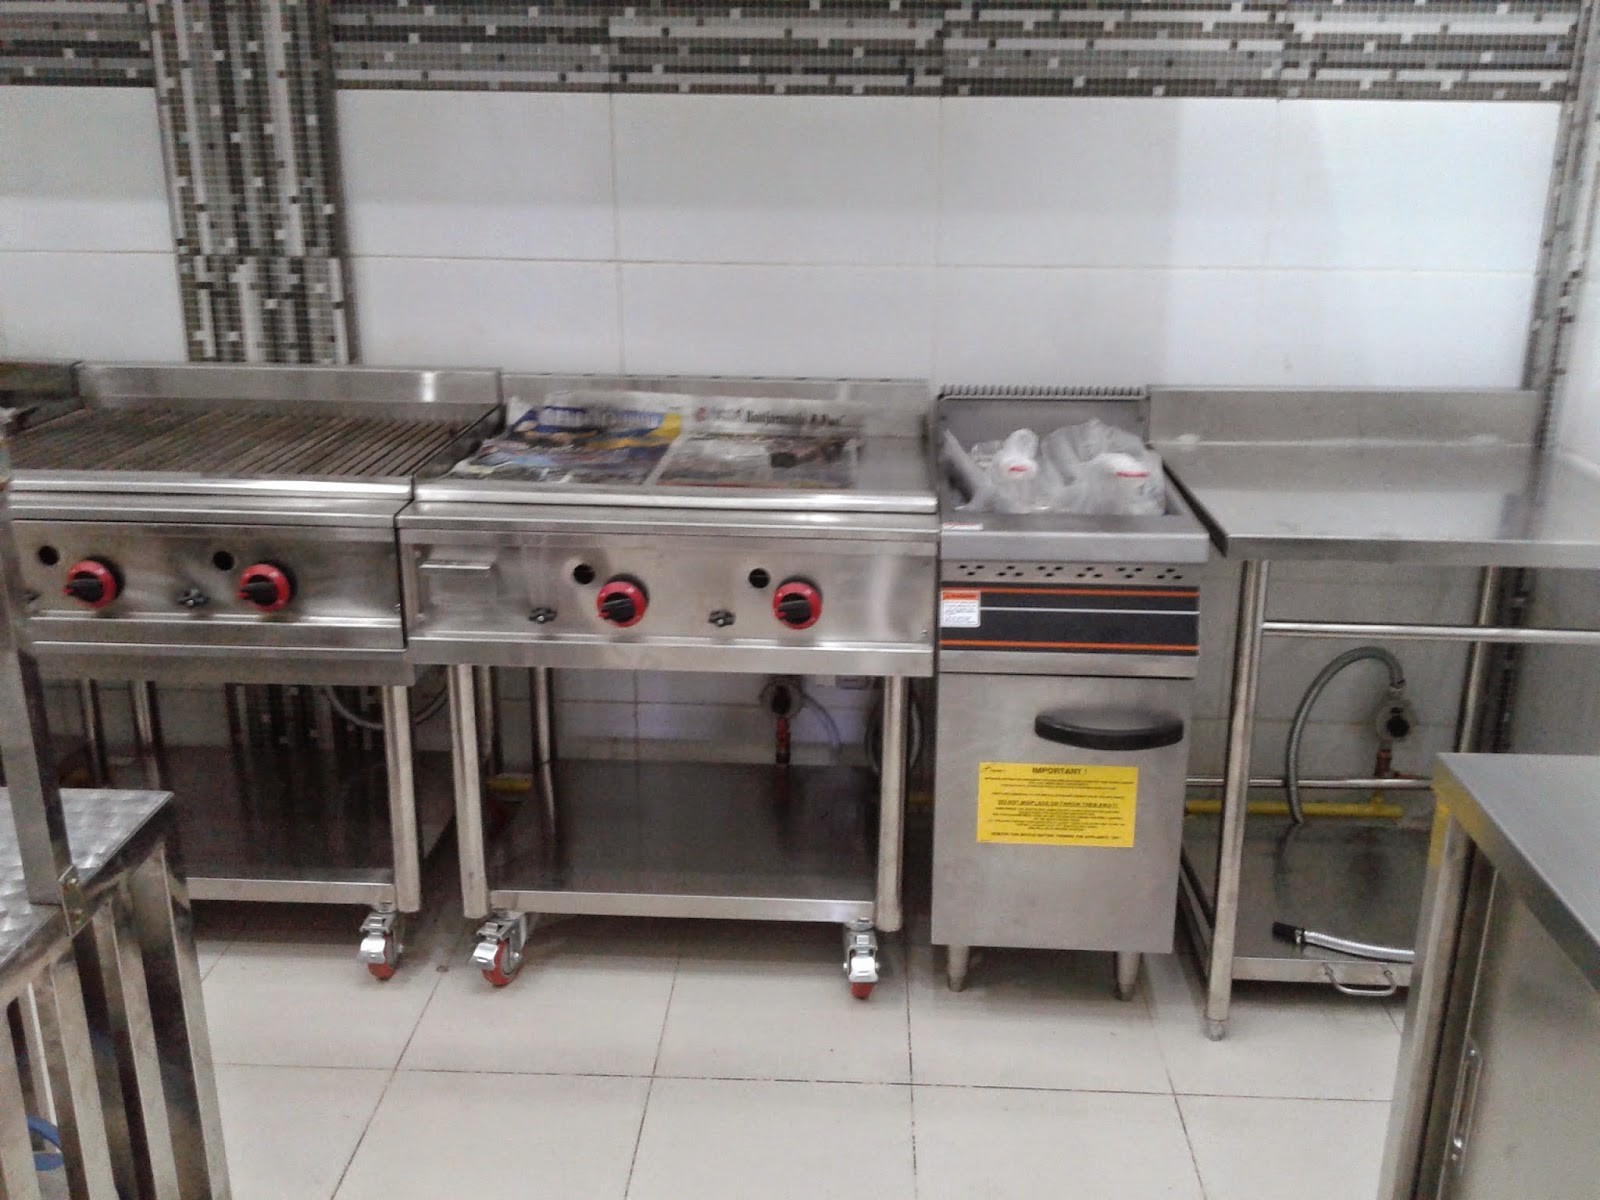 grill gridle & fryer